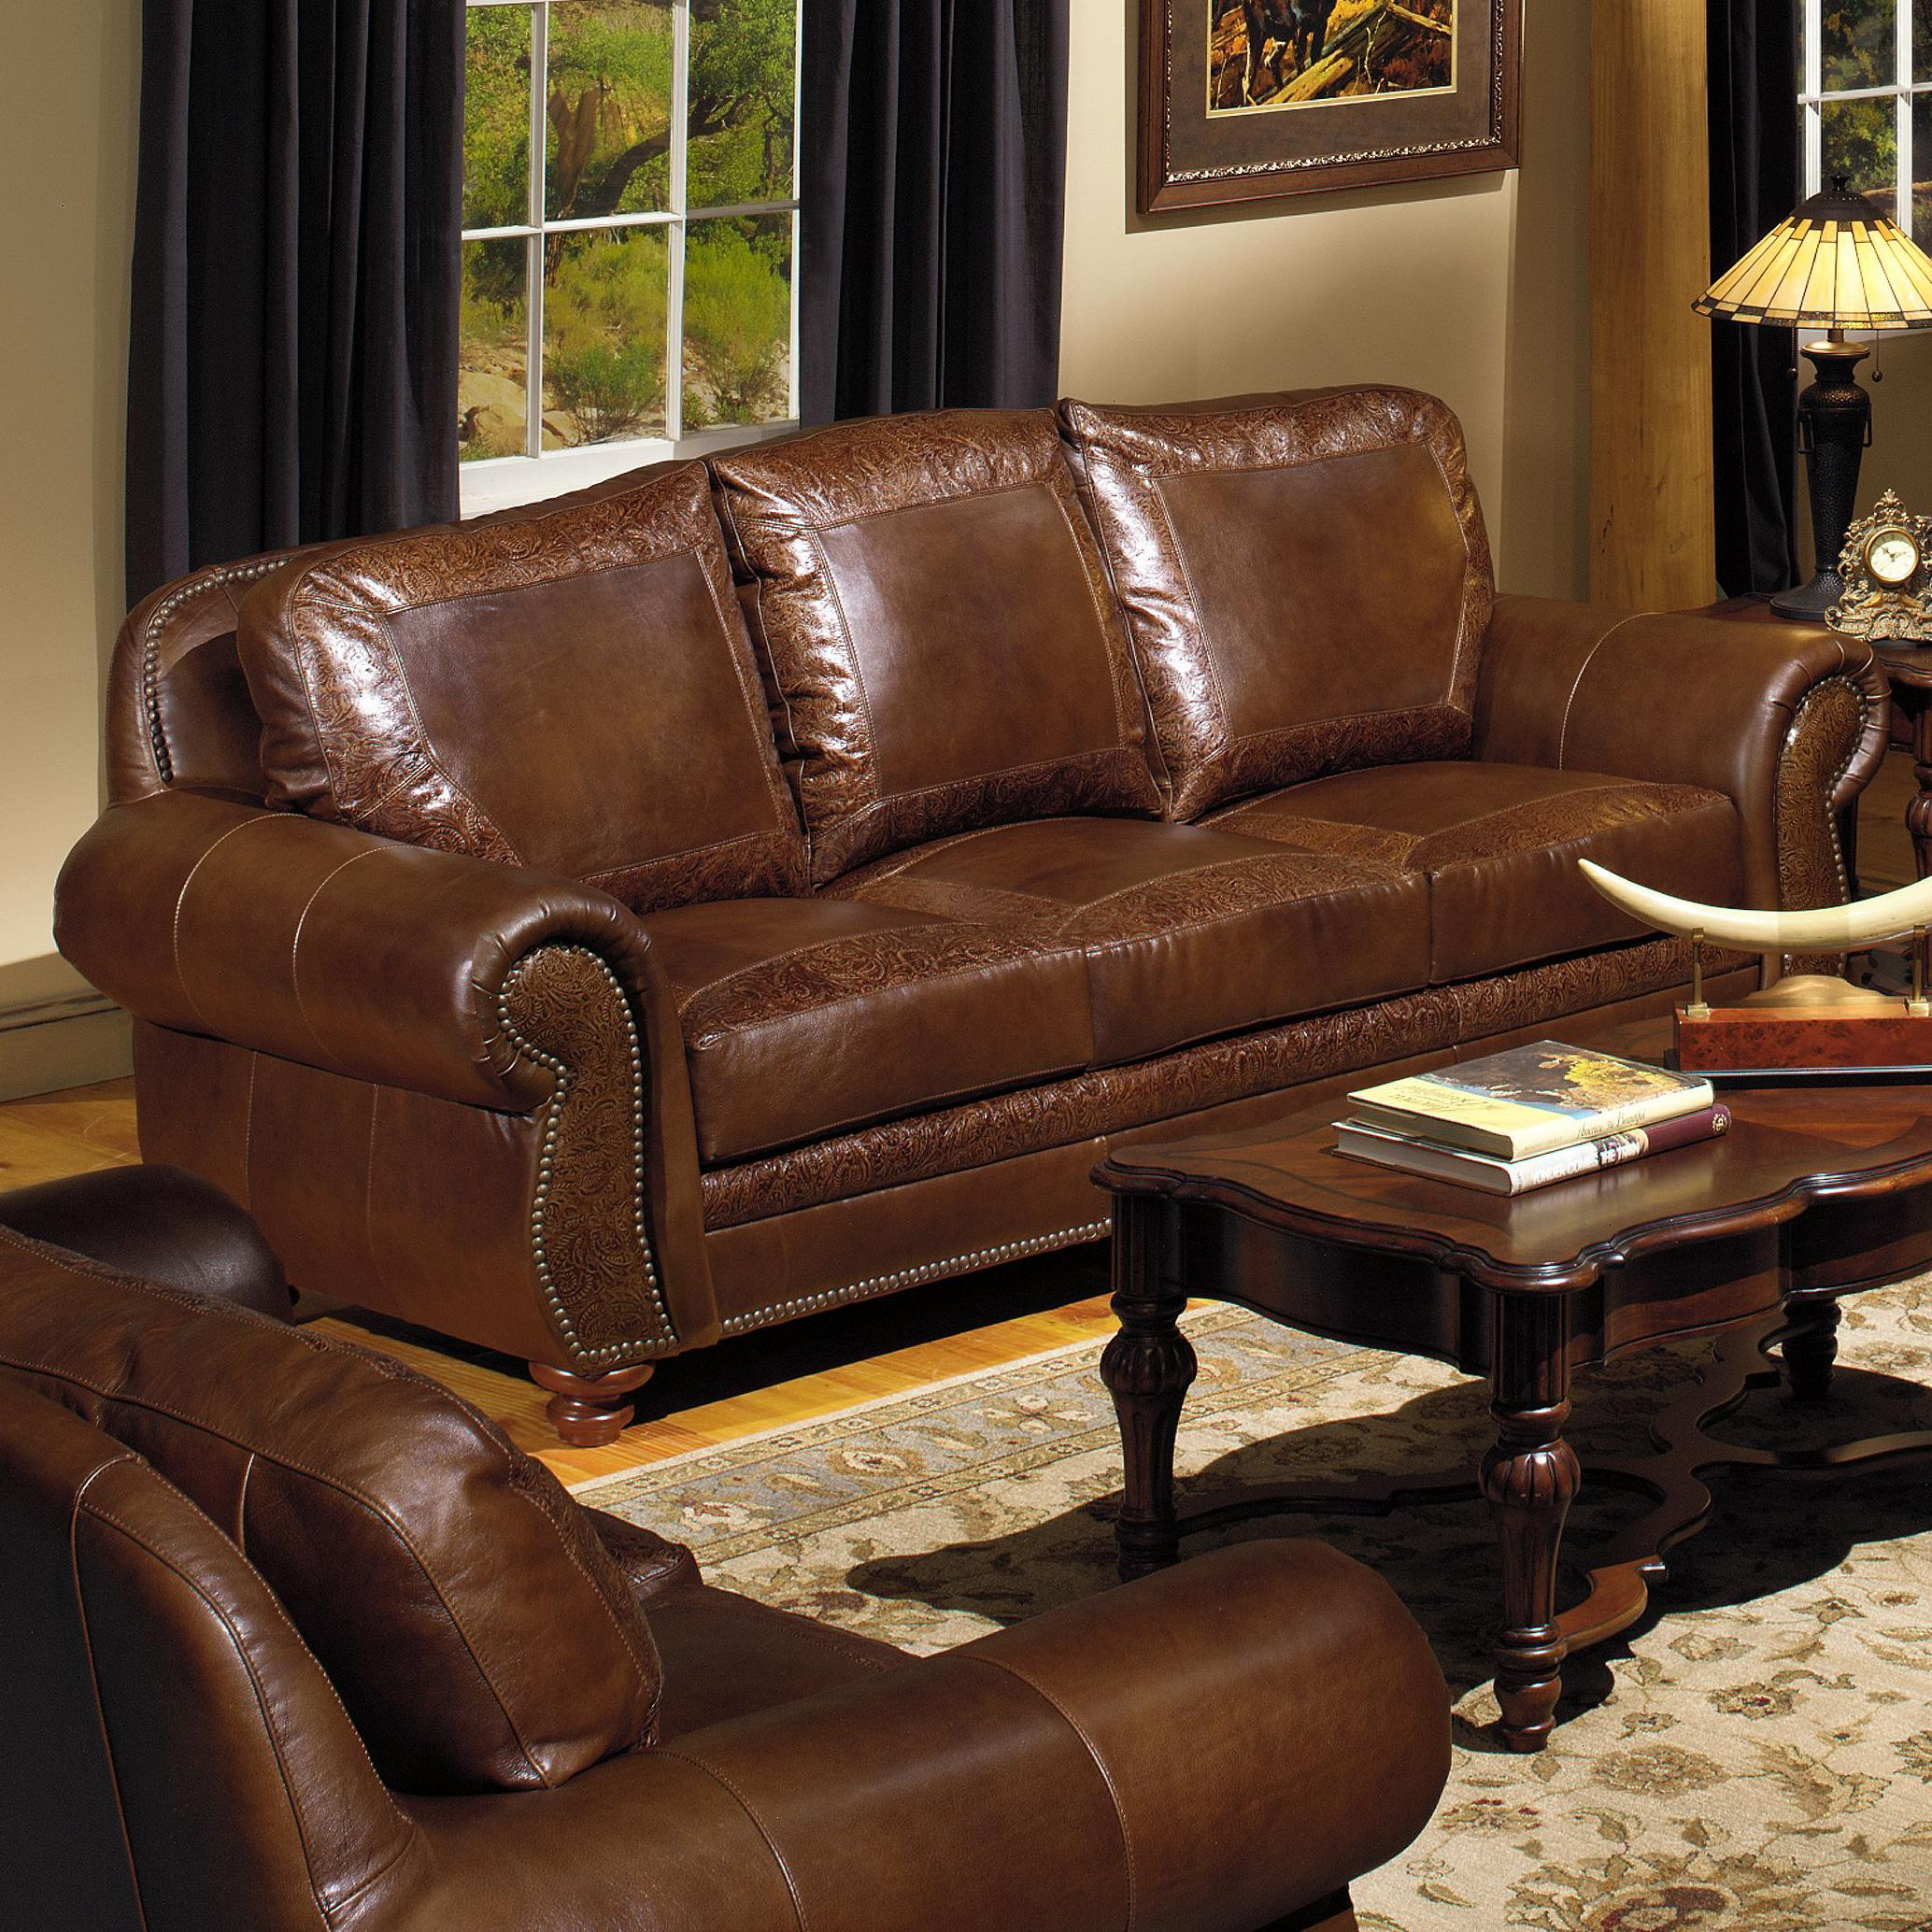 High Quality Traditional Leather Sofa With Nailhead Trim